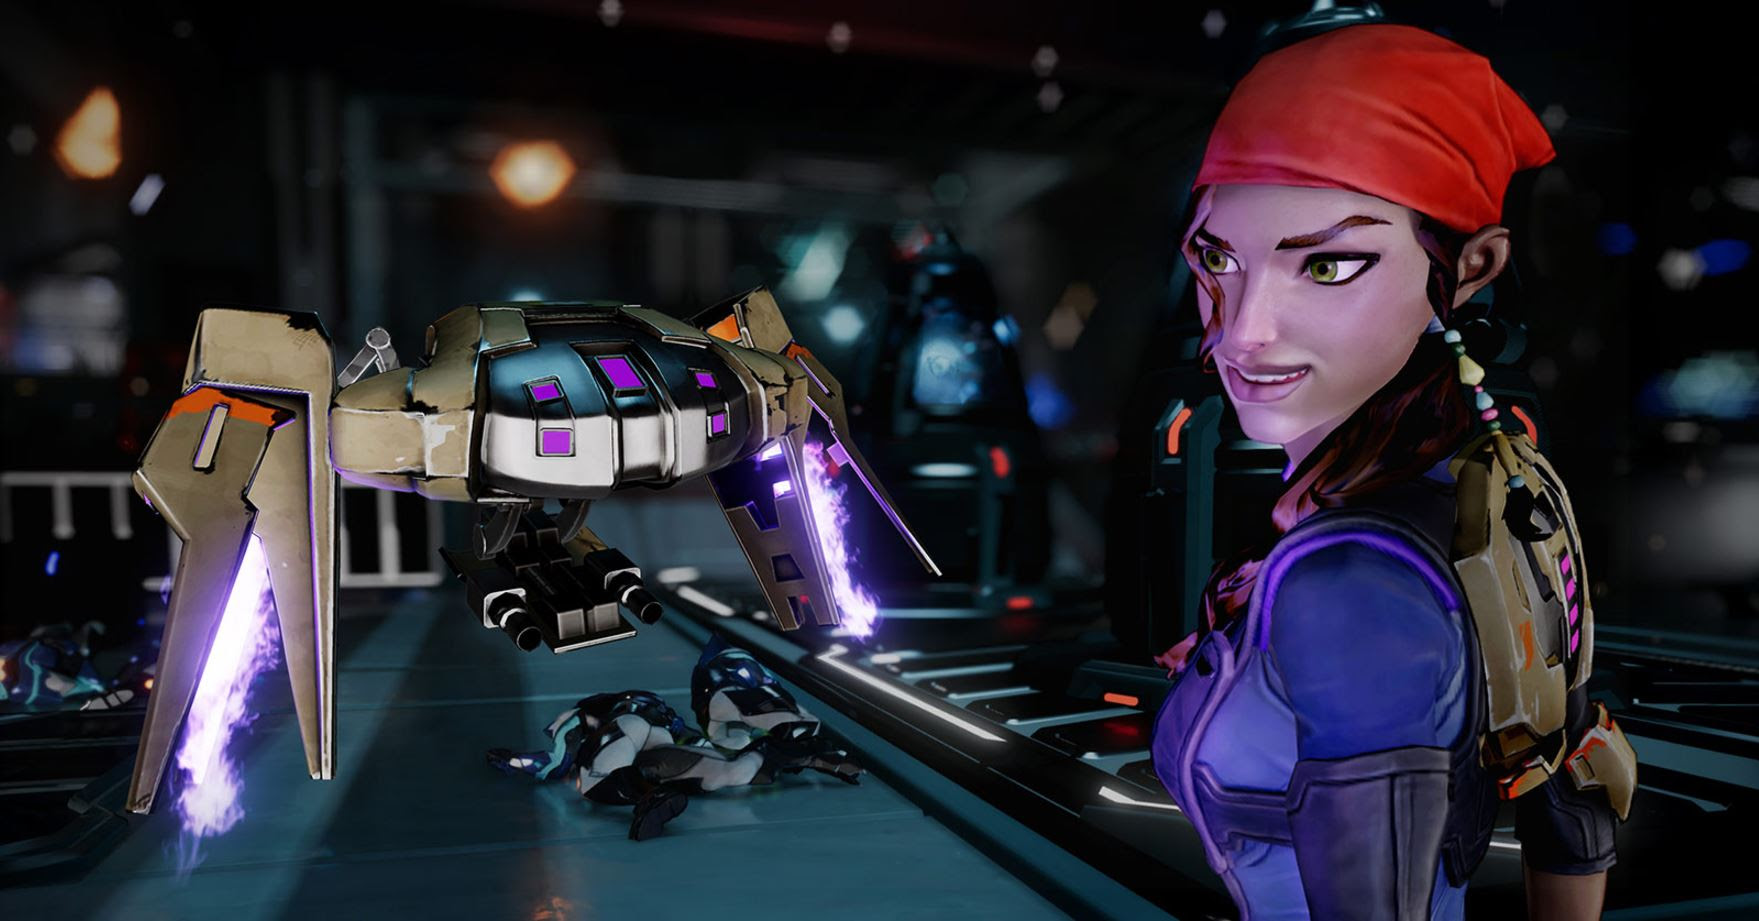 Deals: 26% off Agents of Mayhem, Life is Strange: Before the Storm, plus 16 upcoming PC games screenshot